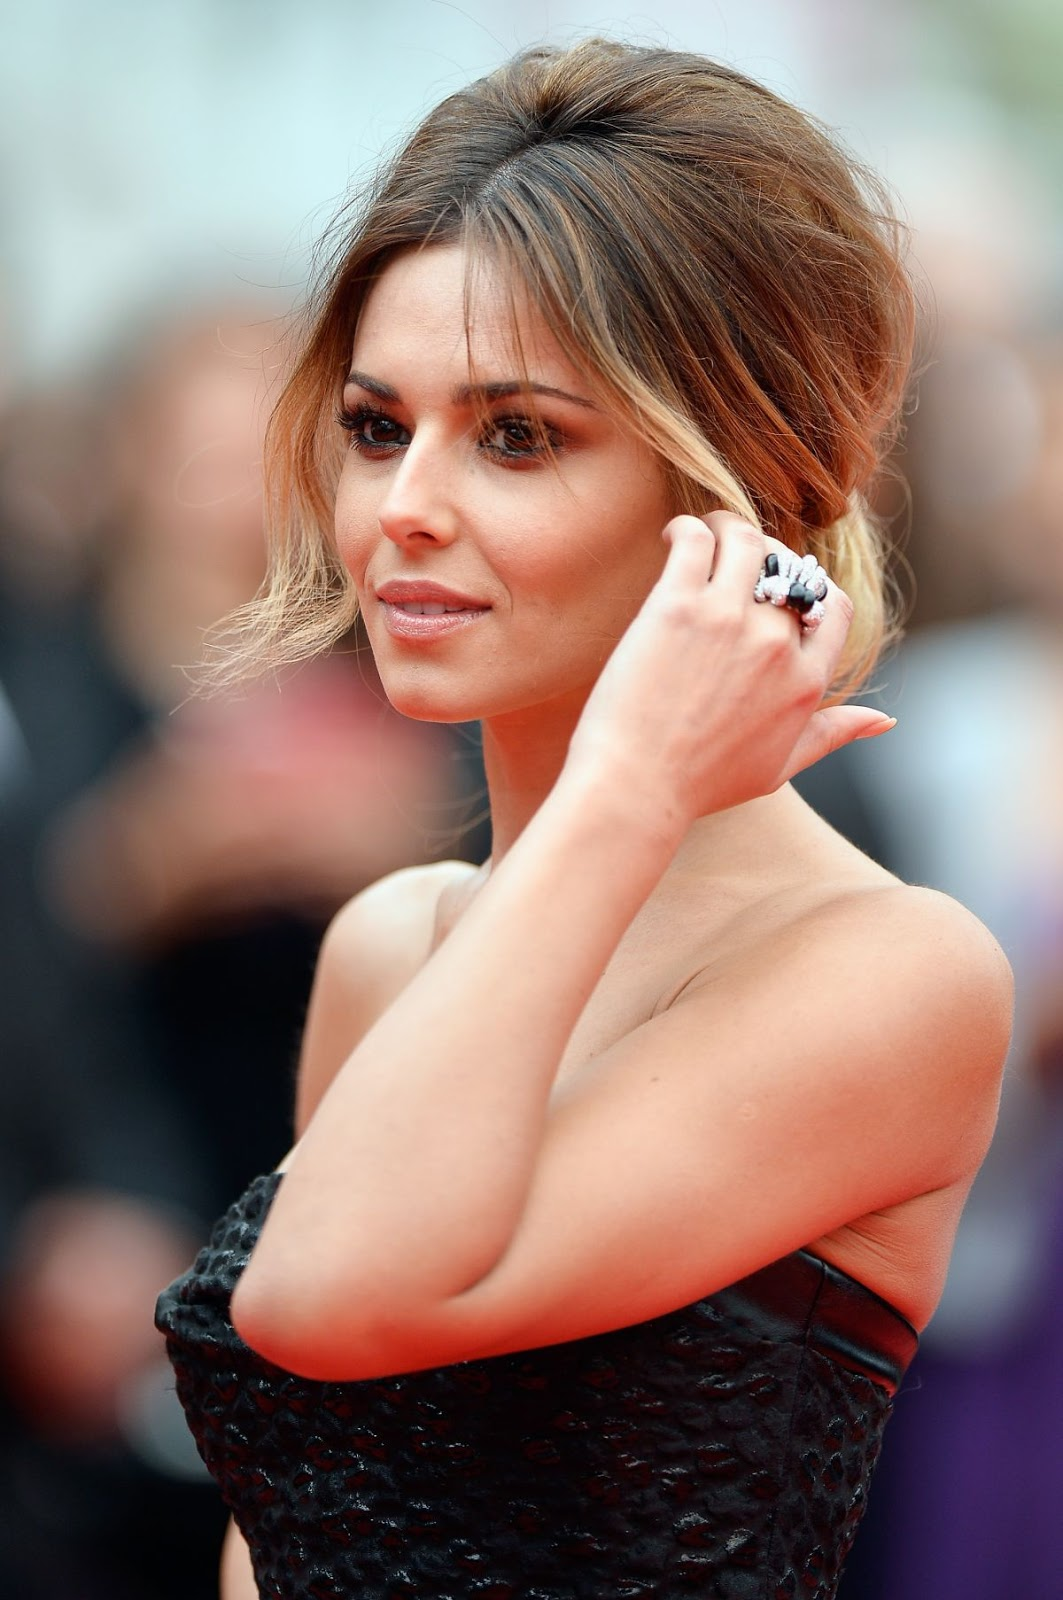 Cheryl Cole At Foxcatcher Premiere At Cannes Film Festival